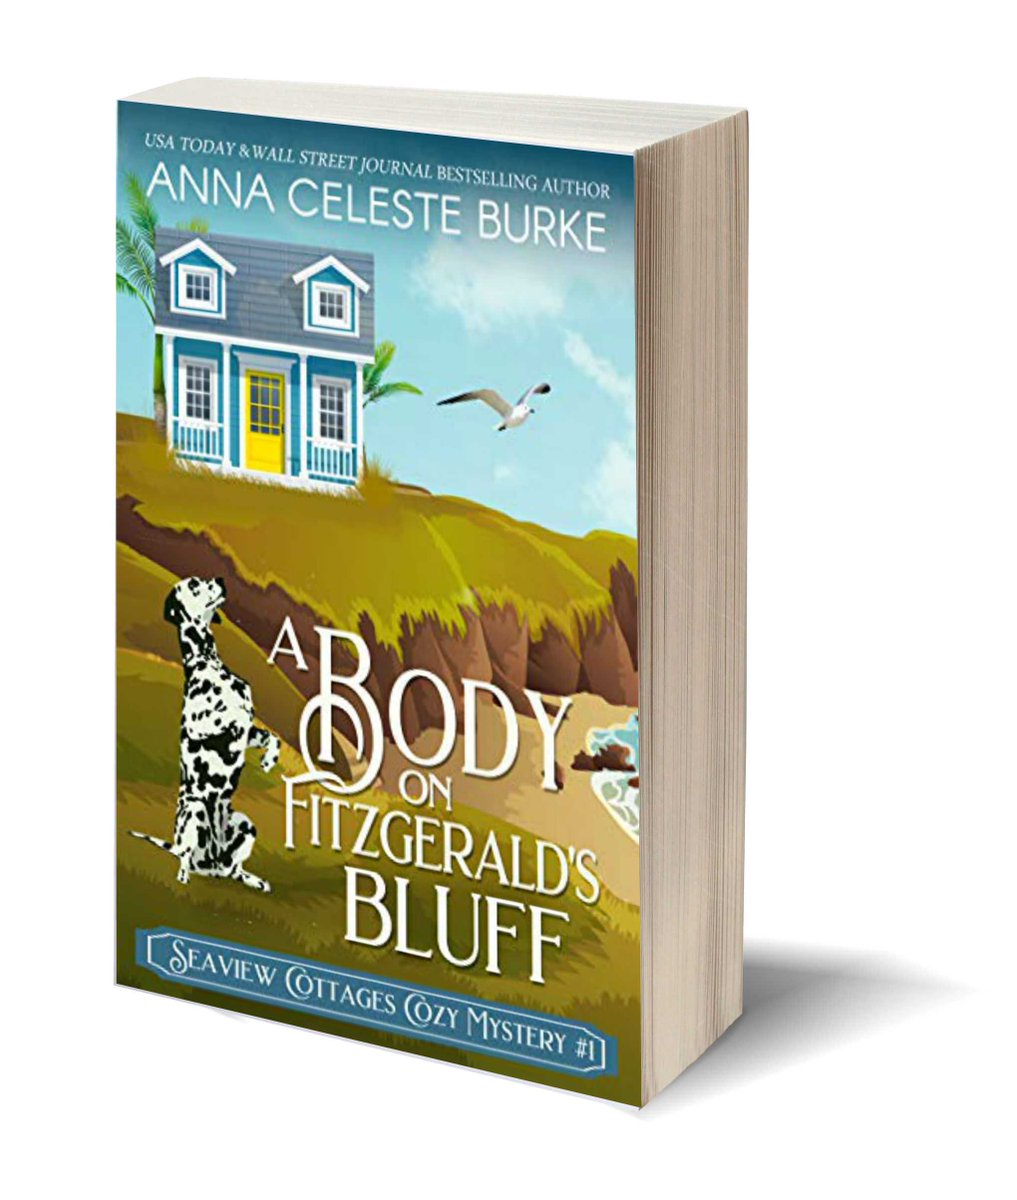 "Can they solve the mystery without becoming the killer's next victim? •A BODY ON FITZGERALD'S BLUFF• 🔗   #ASMSG #bookworms ""@aburke59 🦉  ✎via Pizzazz Book Promotions   ""#IARTG"